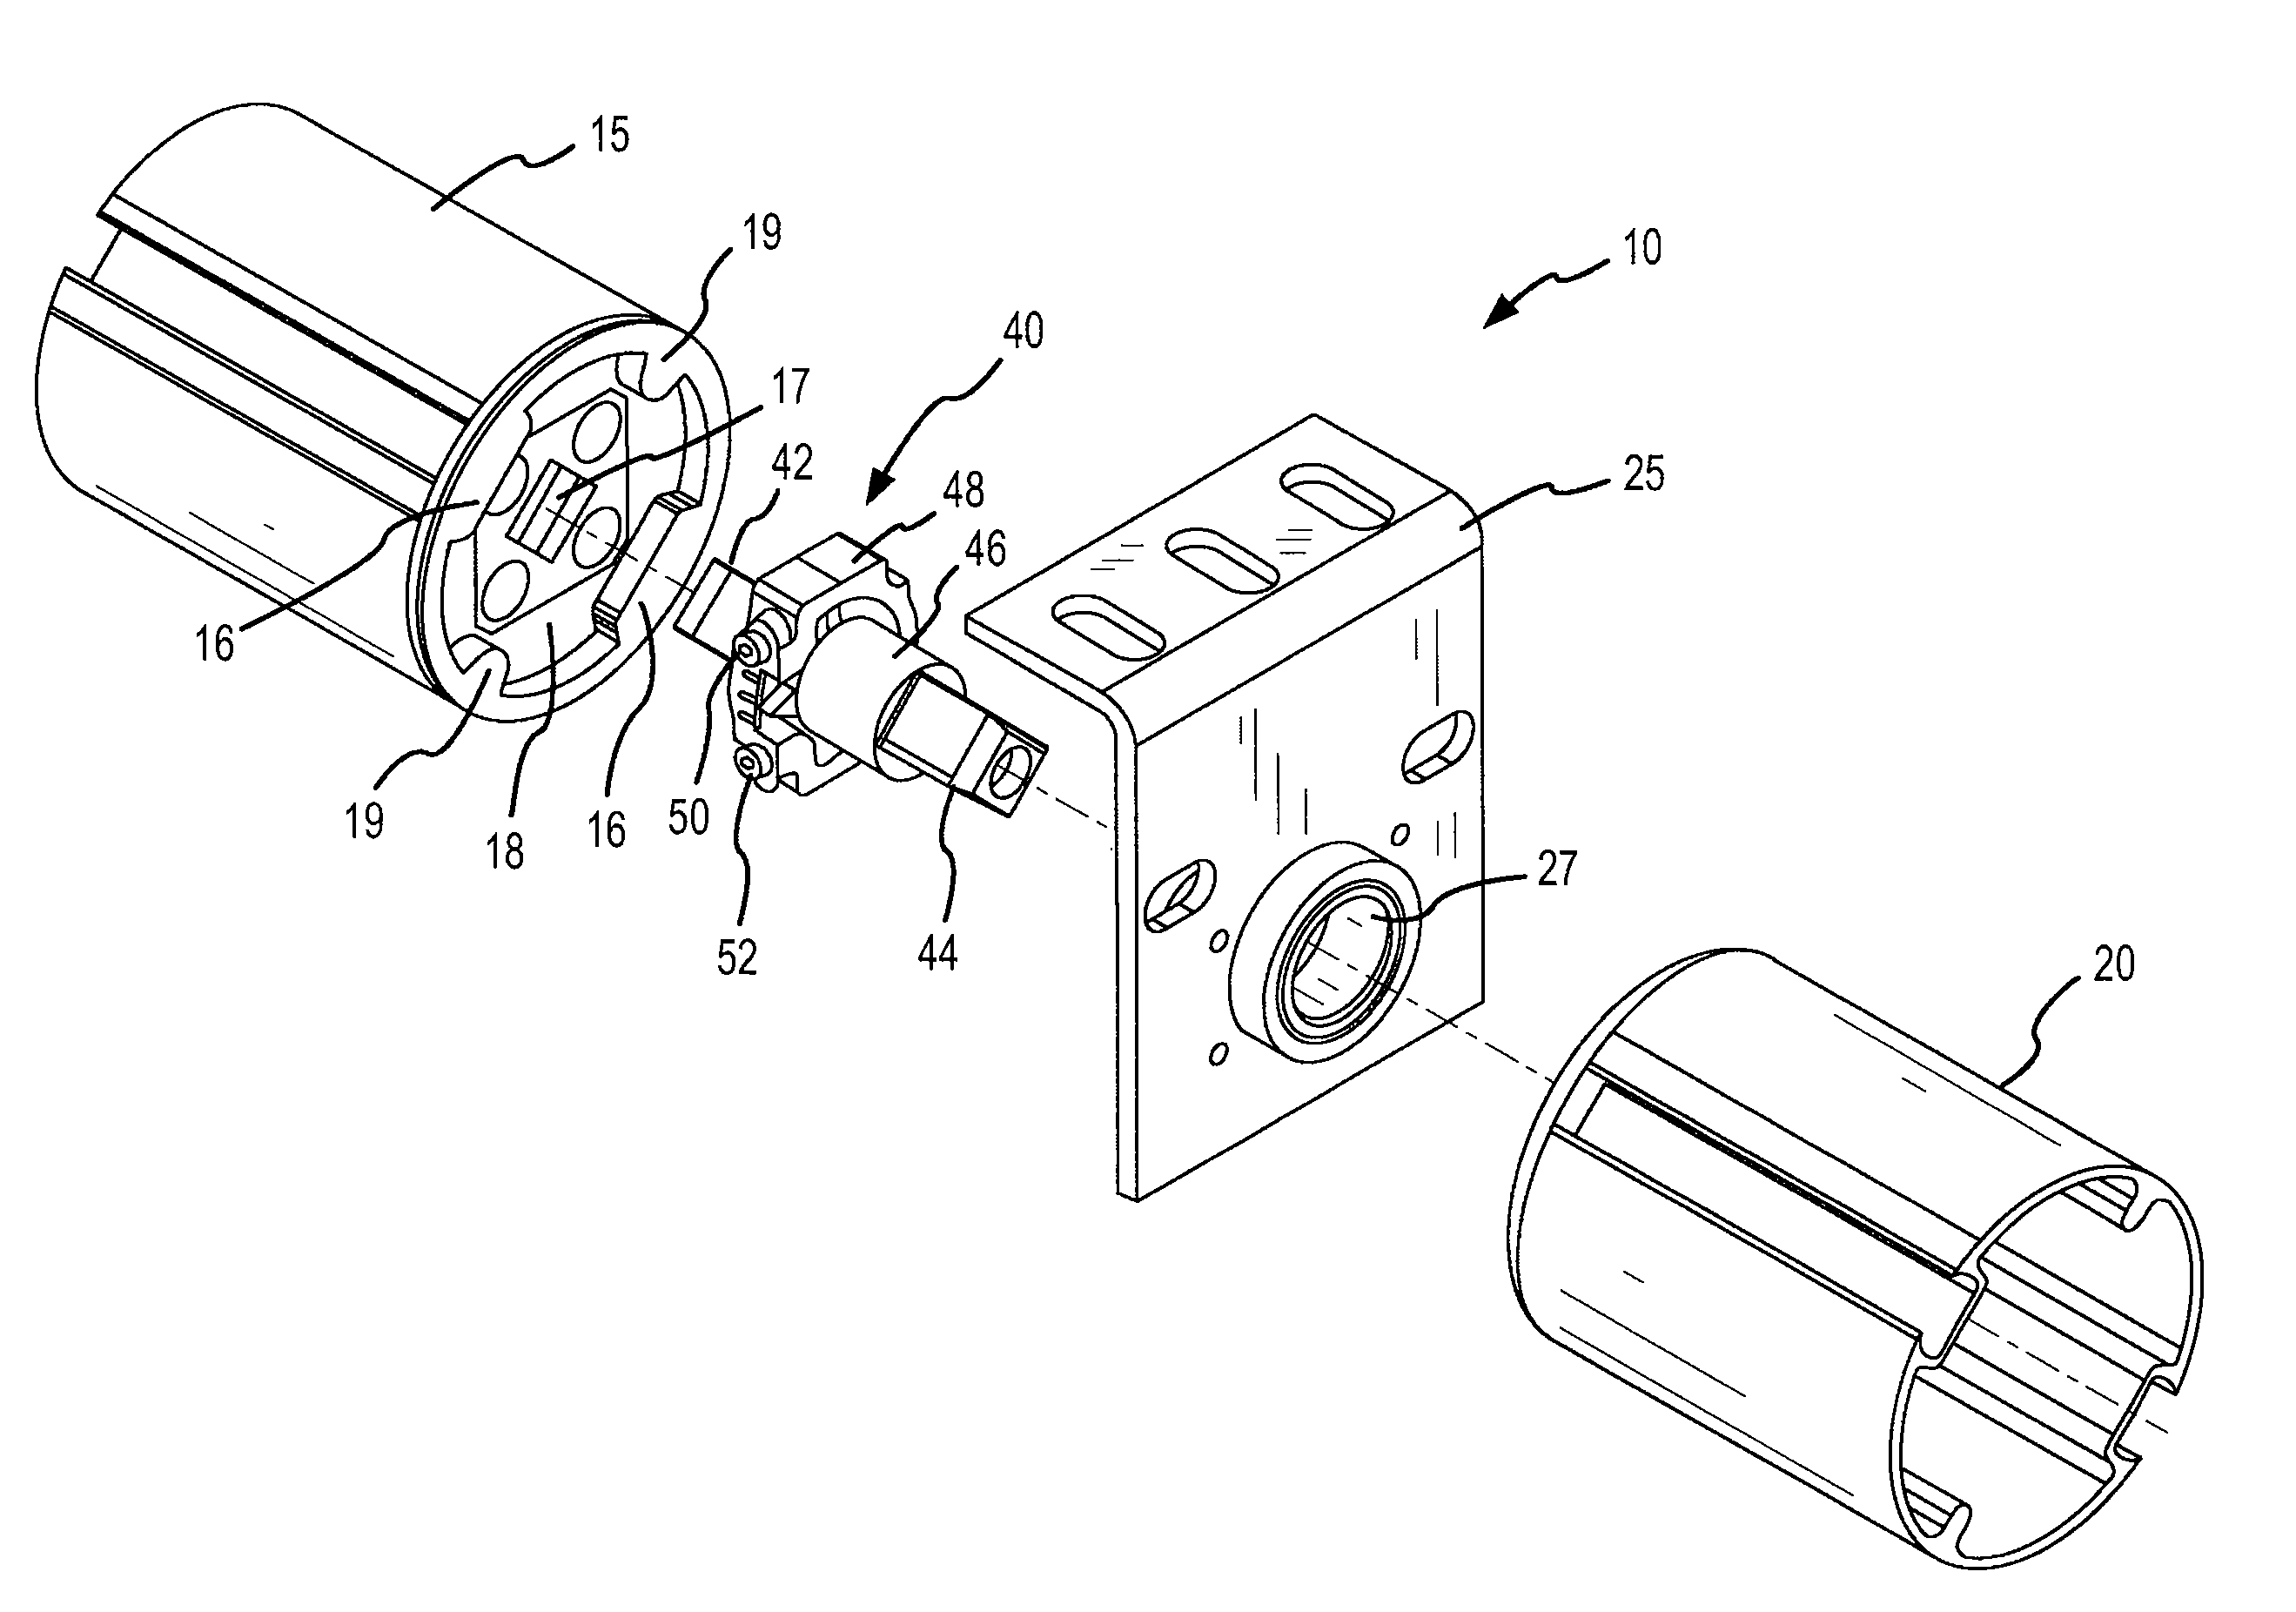 Patent Us7625151 System And Method For An Adjustable